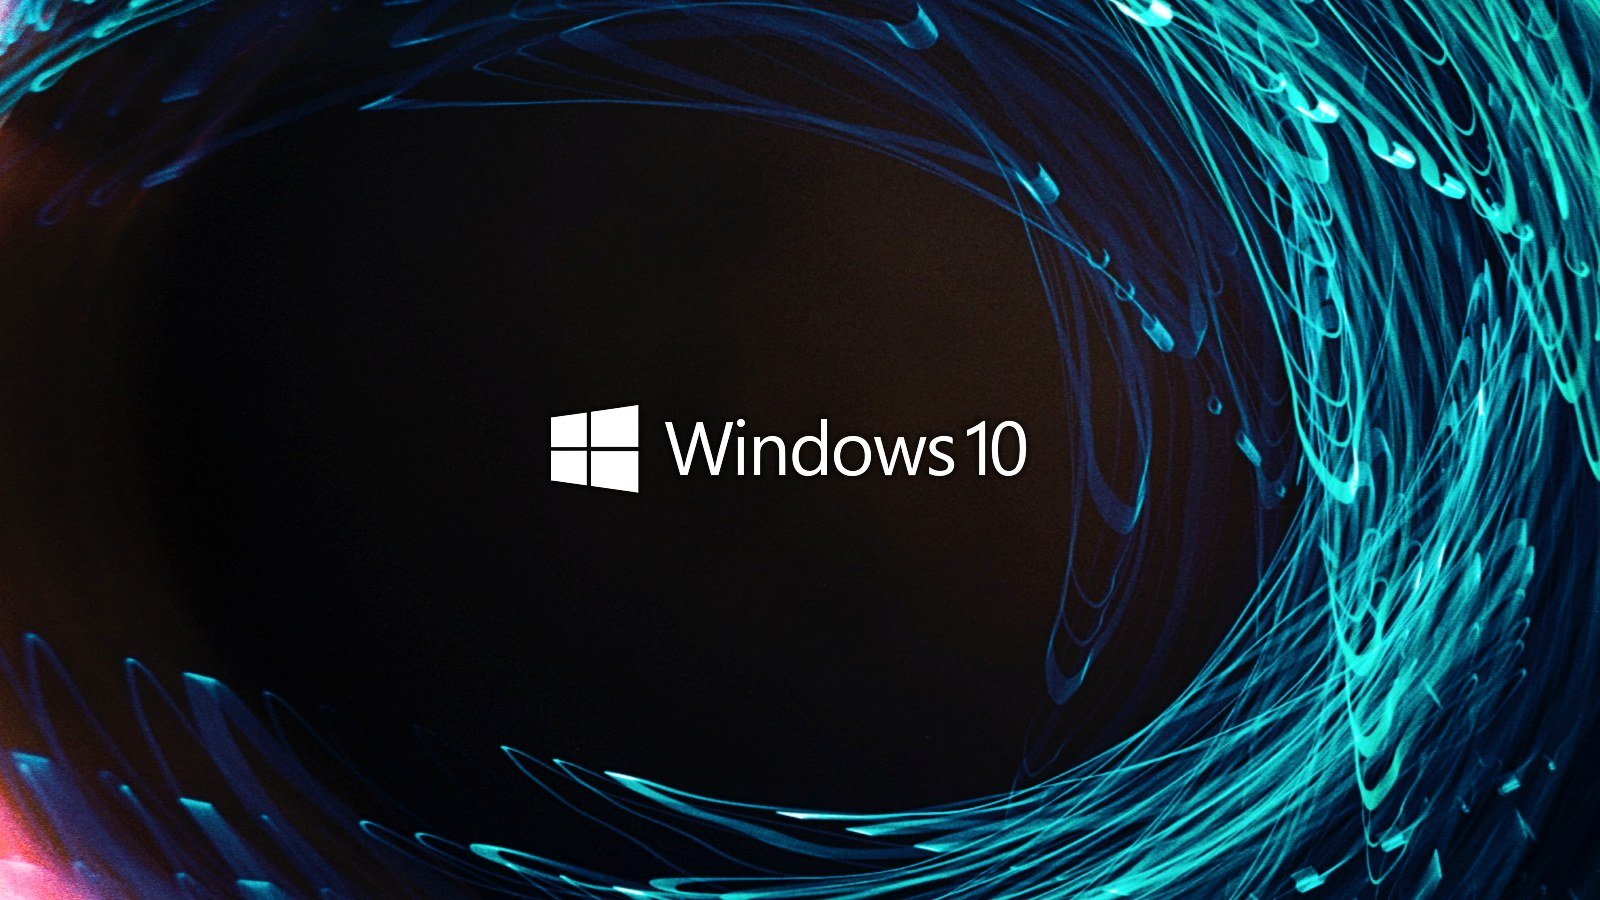 Microsoft: Several Windows 10 editions have reached end of service